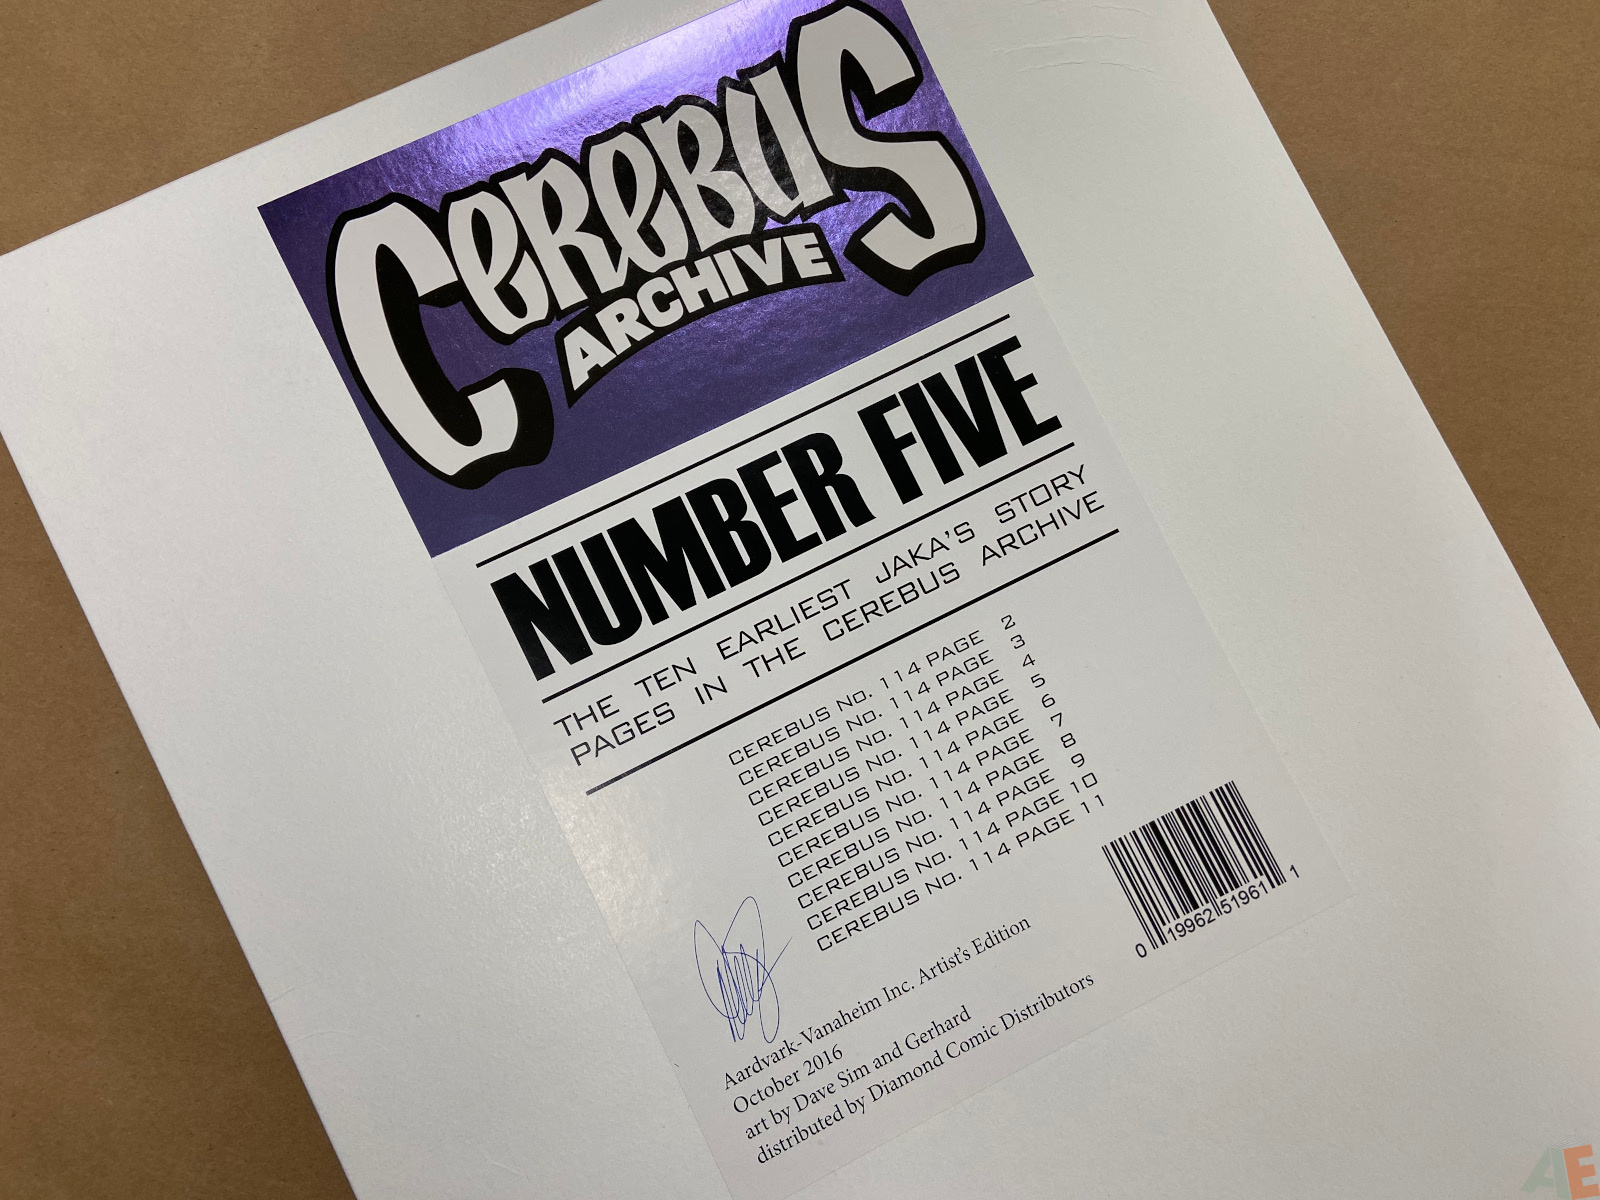 Cerebus Archive Number Five 18